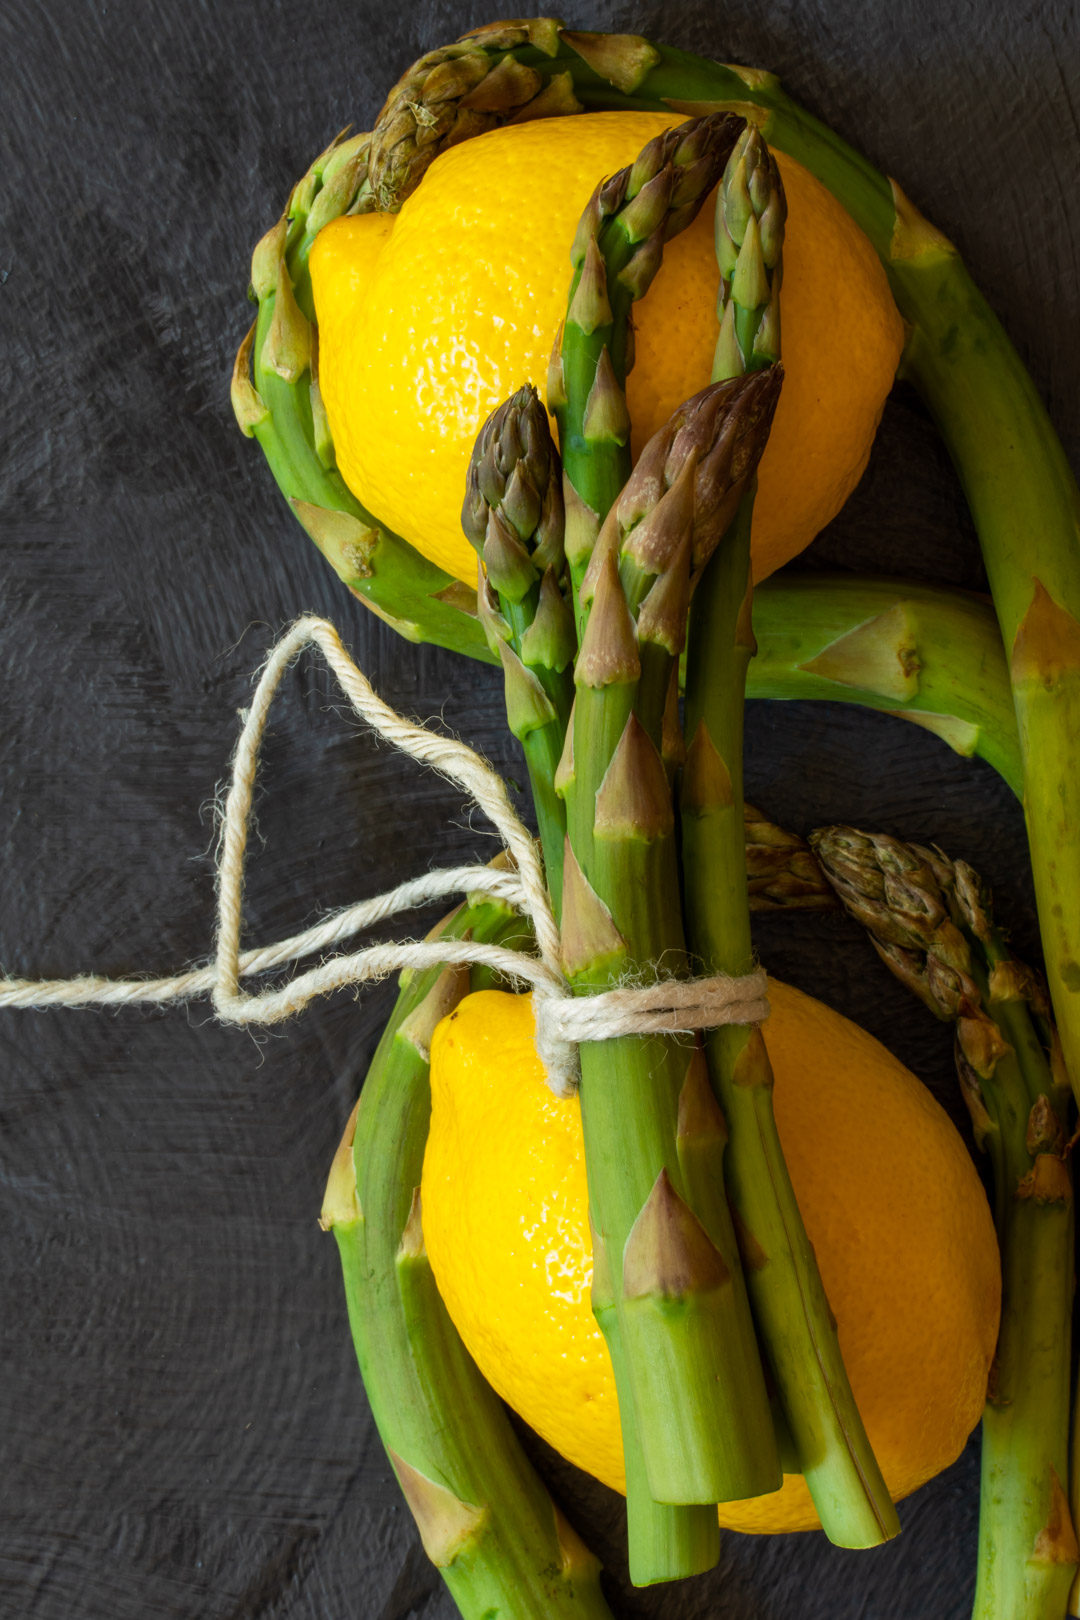 asparagus & lemon tart: asparagus and lemon still life flatlay